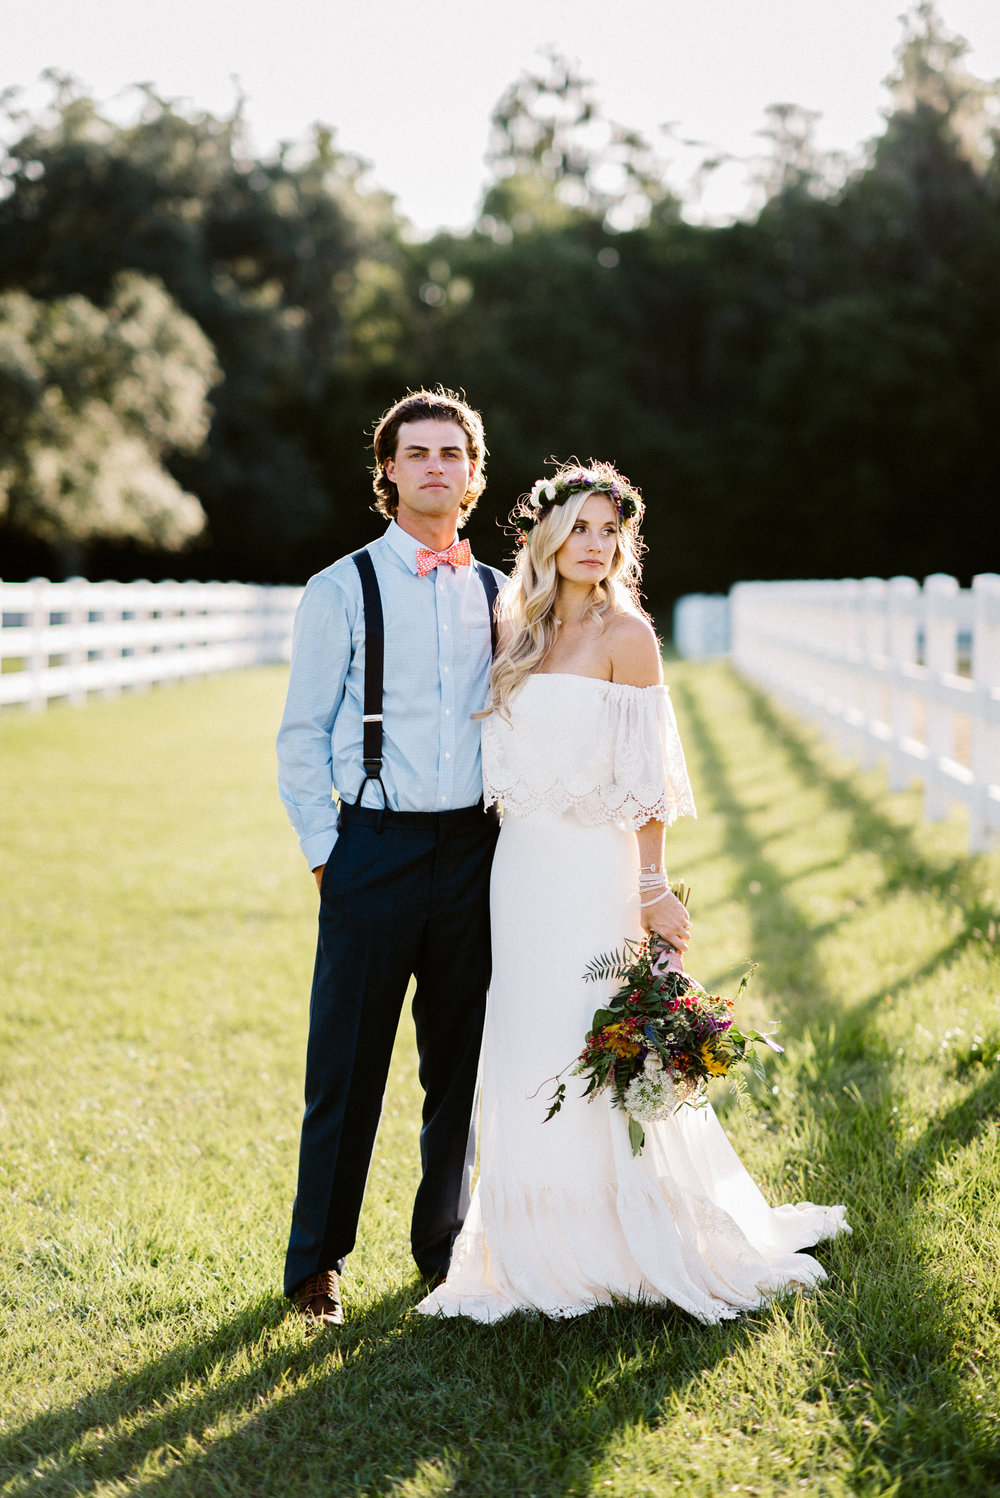 BROOKE'S WOODLAND FALL BOHEMIAN ON A FARM WEDDING